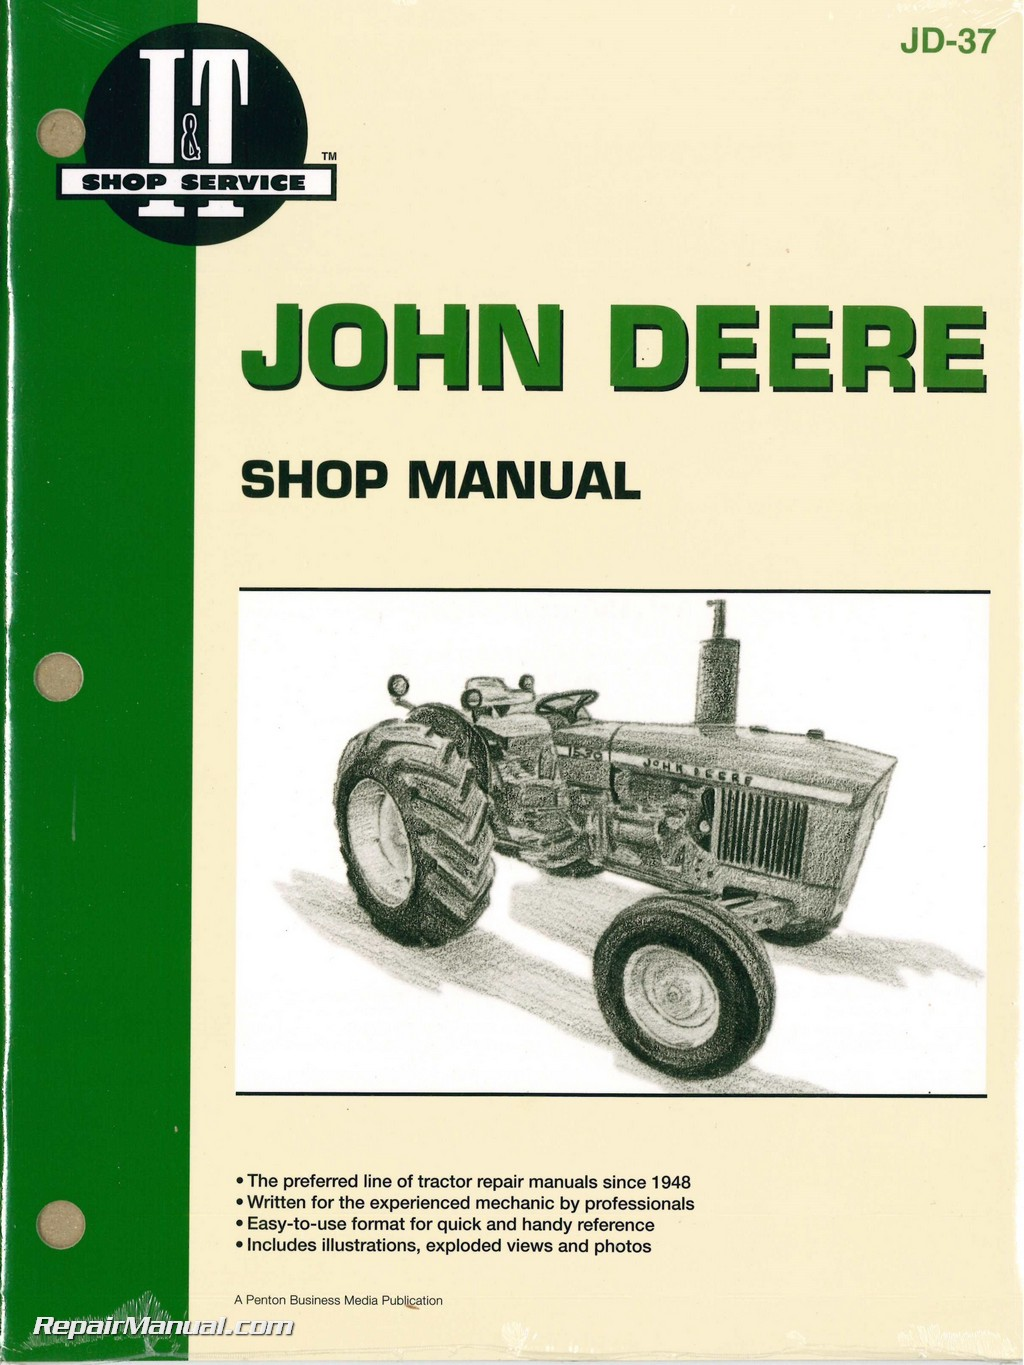 john deere 1020 1520 1530 2020 2030 tractor workshop manual rh repairmanual  com JD 1010 JD